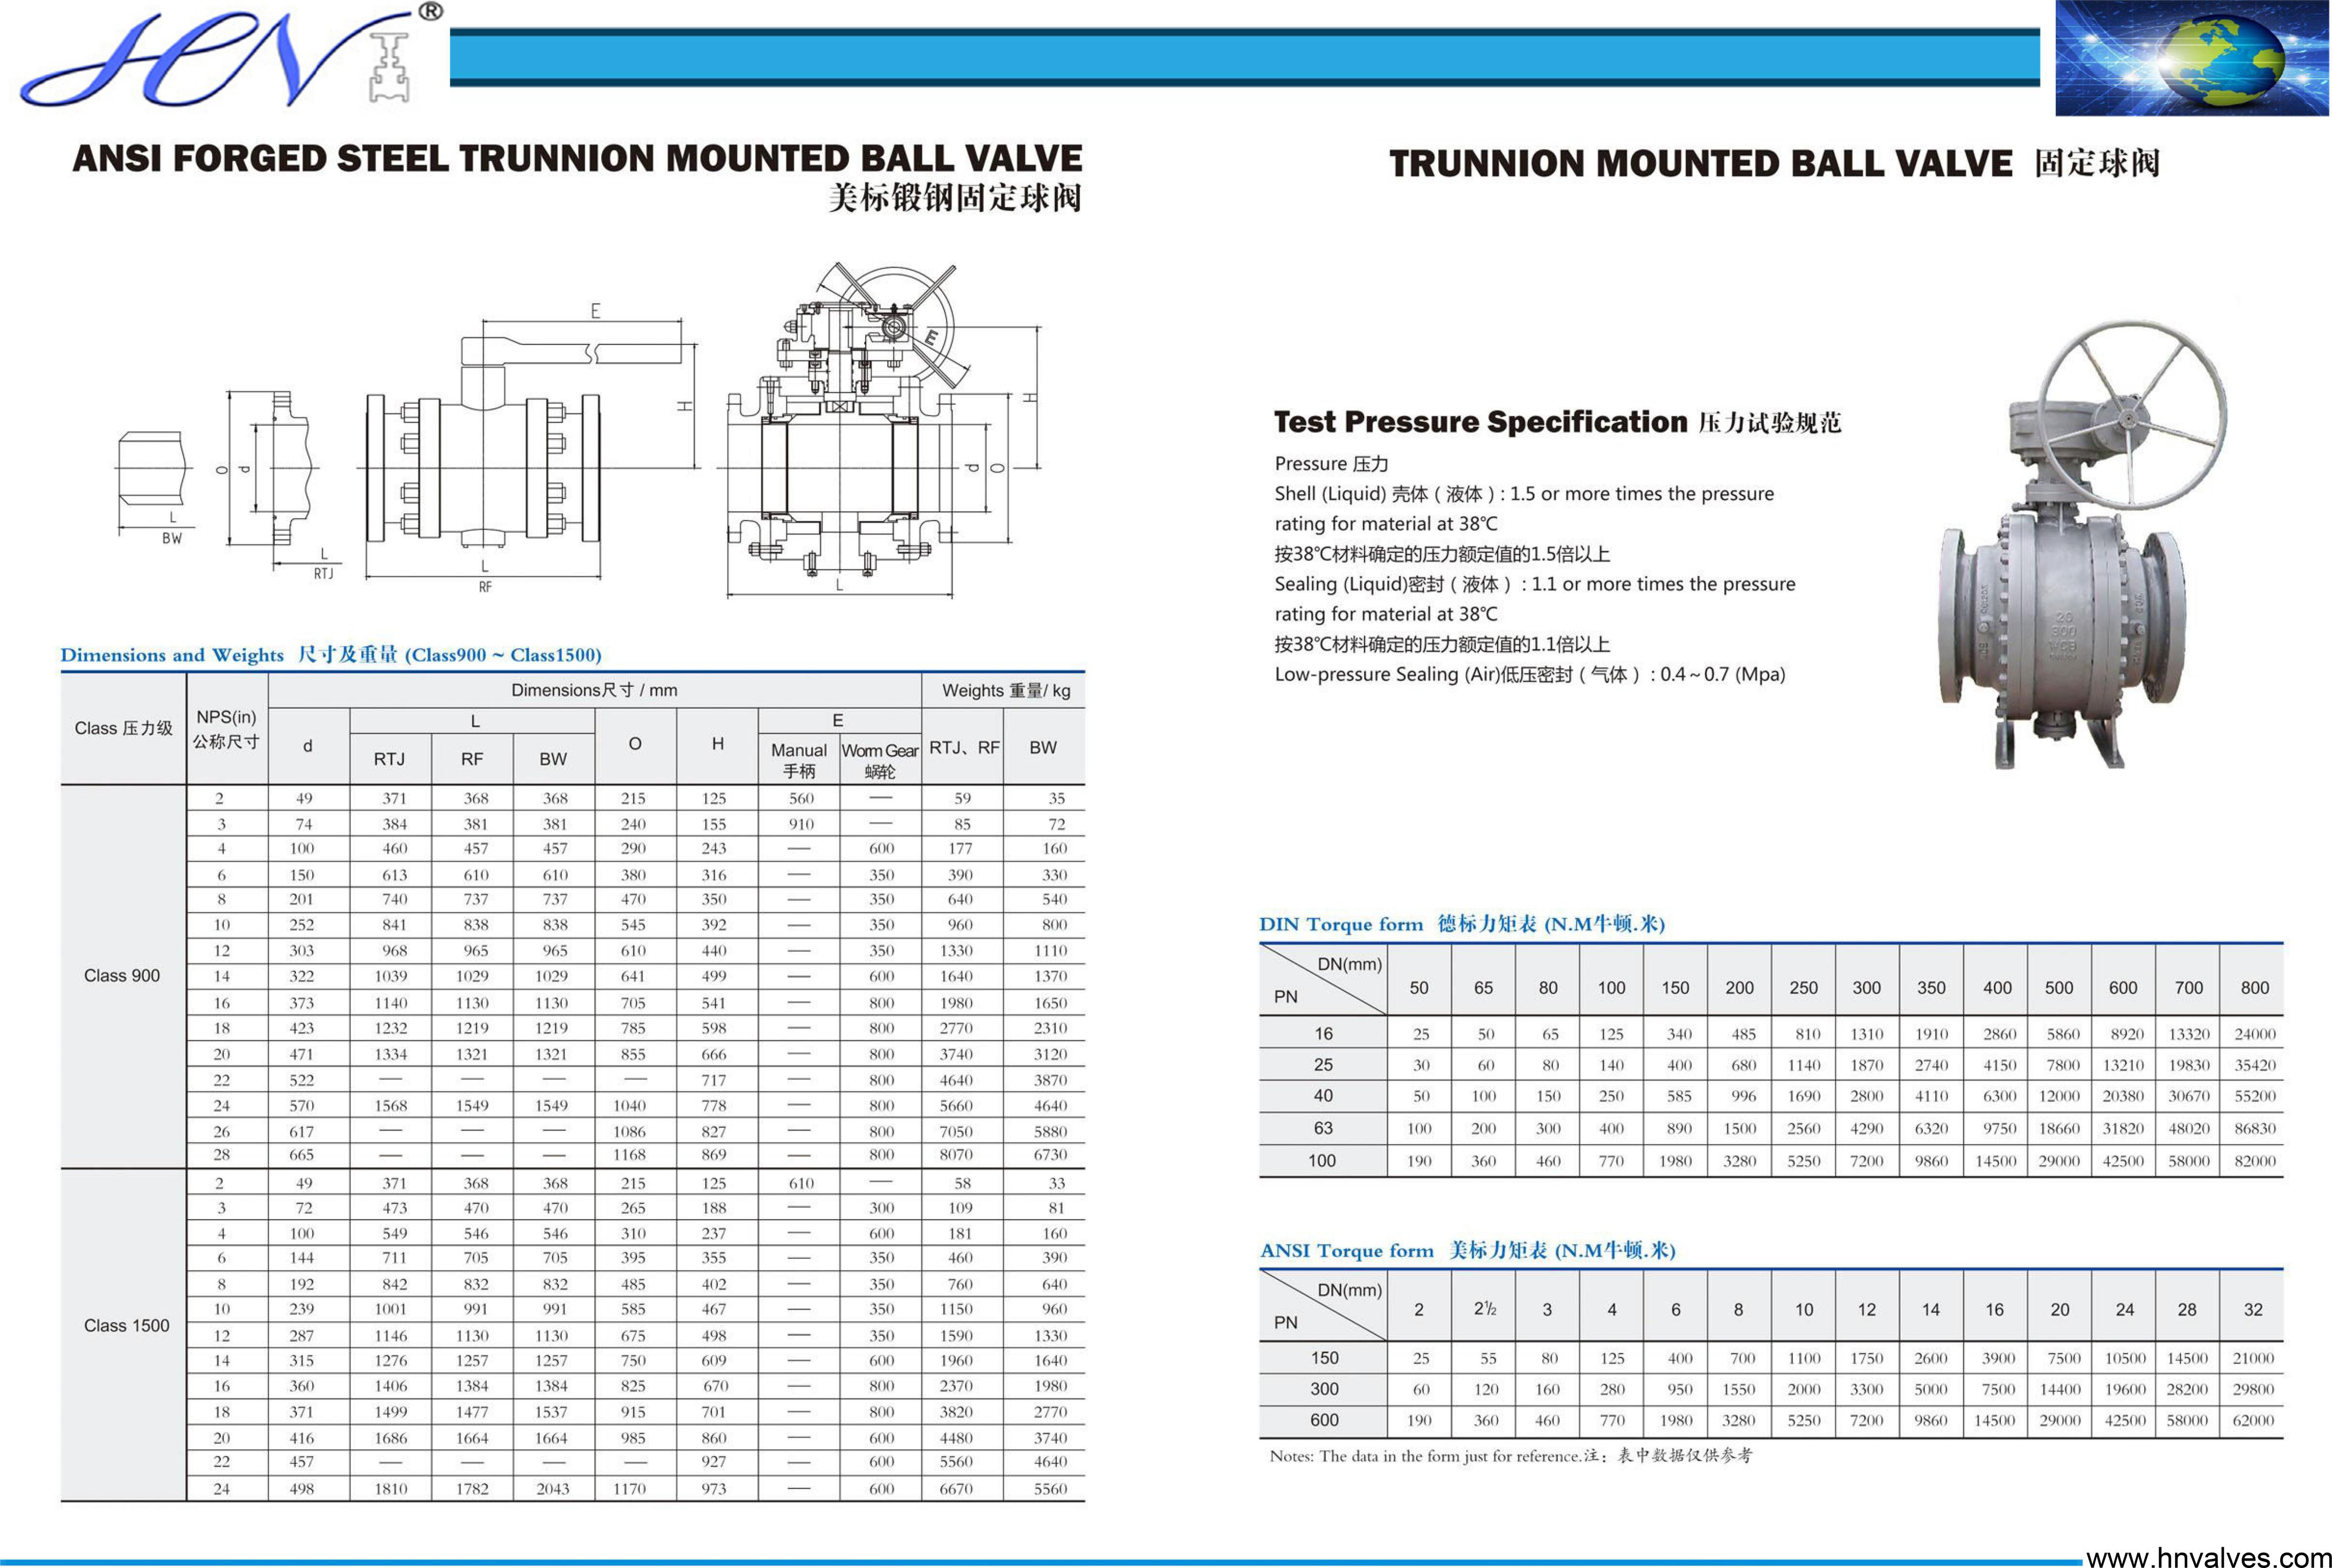 trunnion mounted ball valve dimension and weight